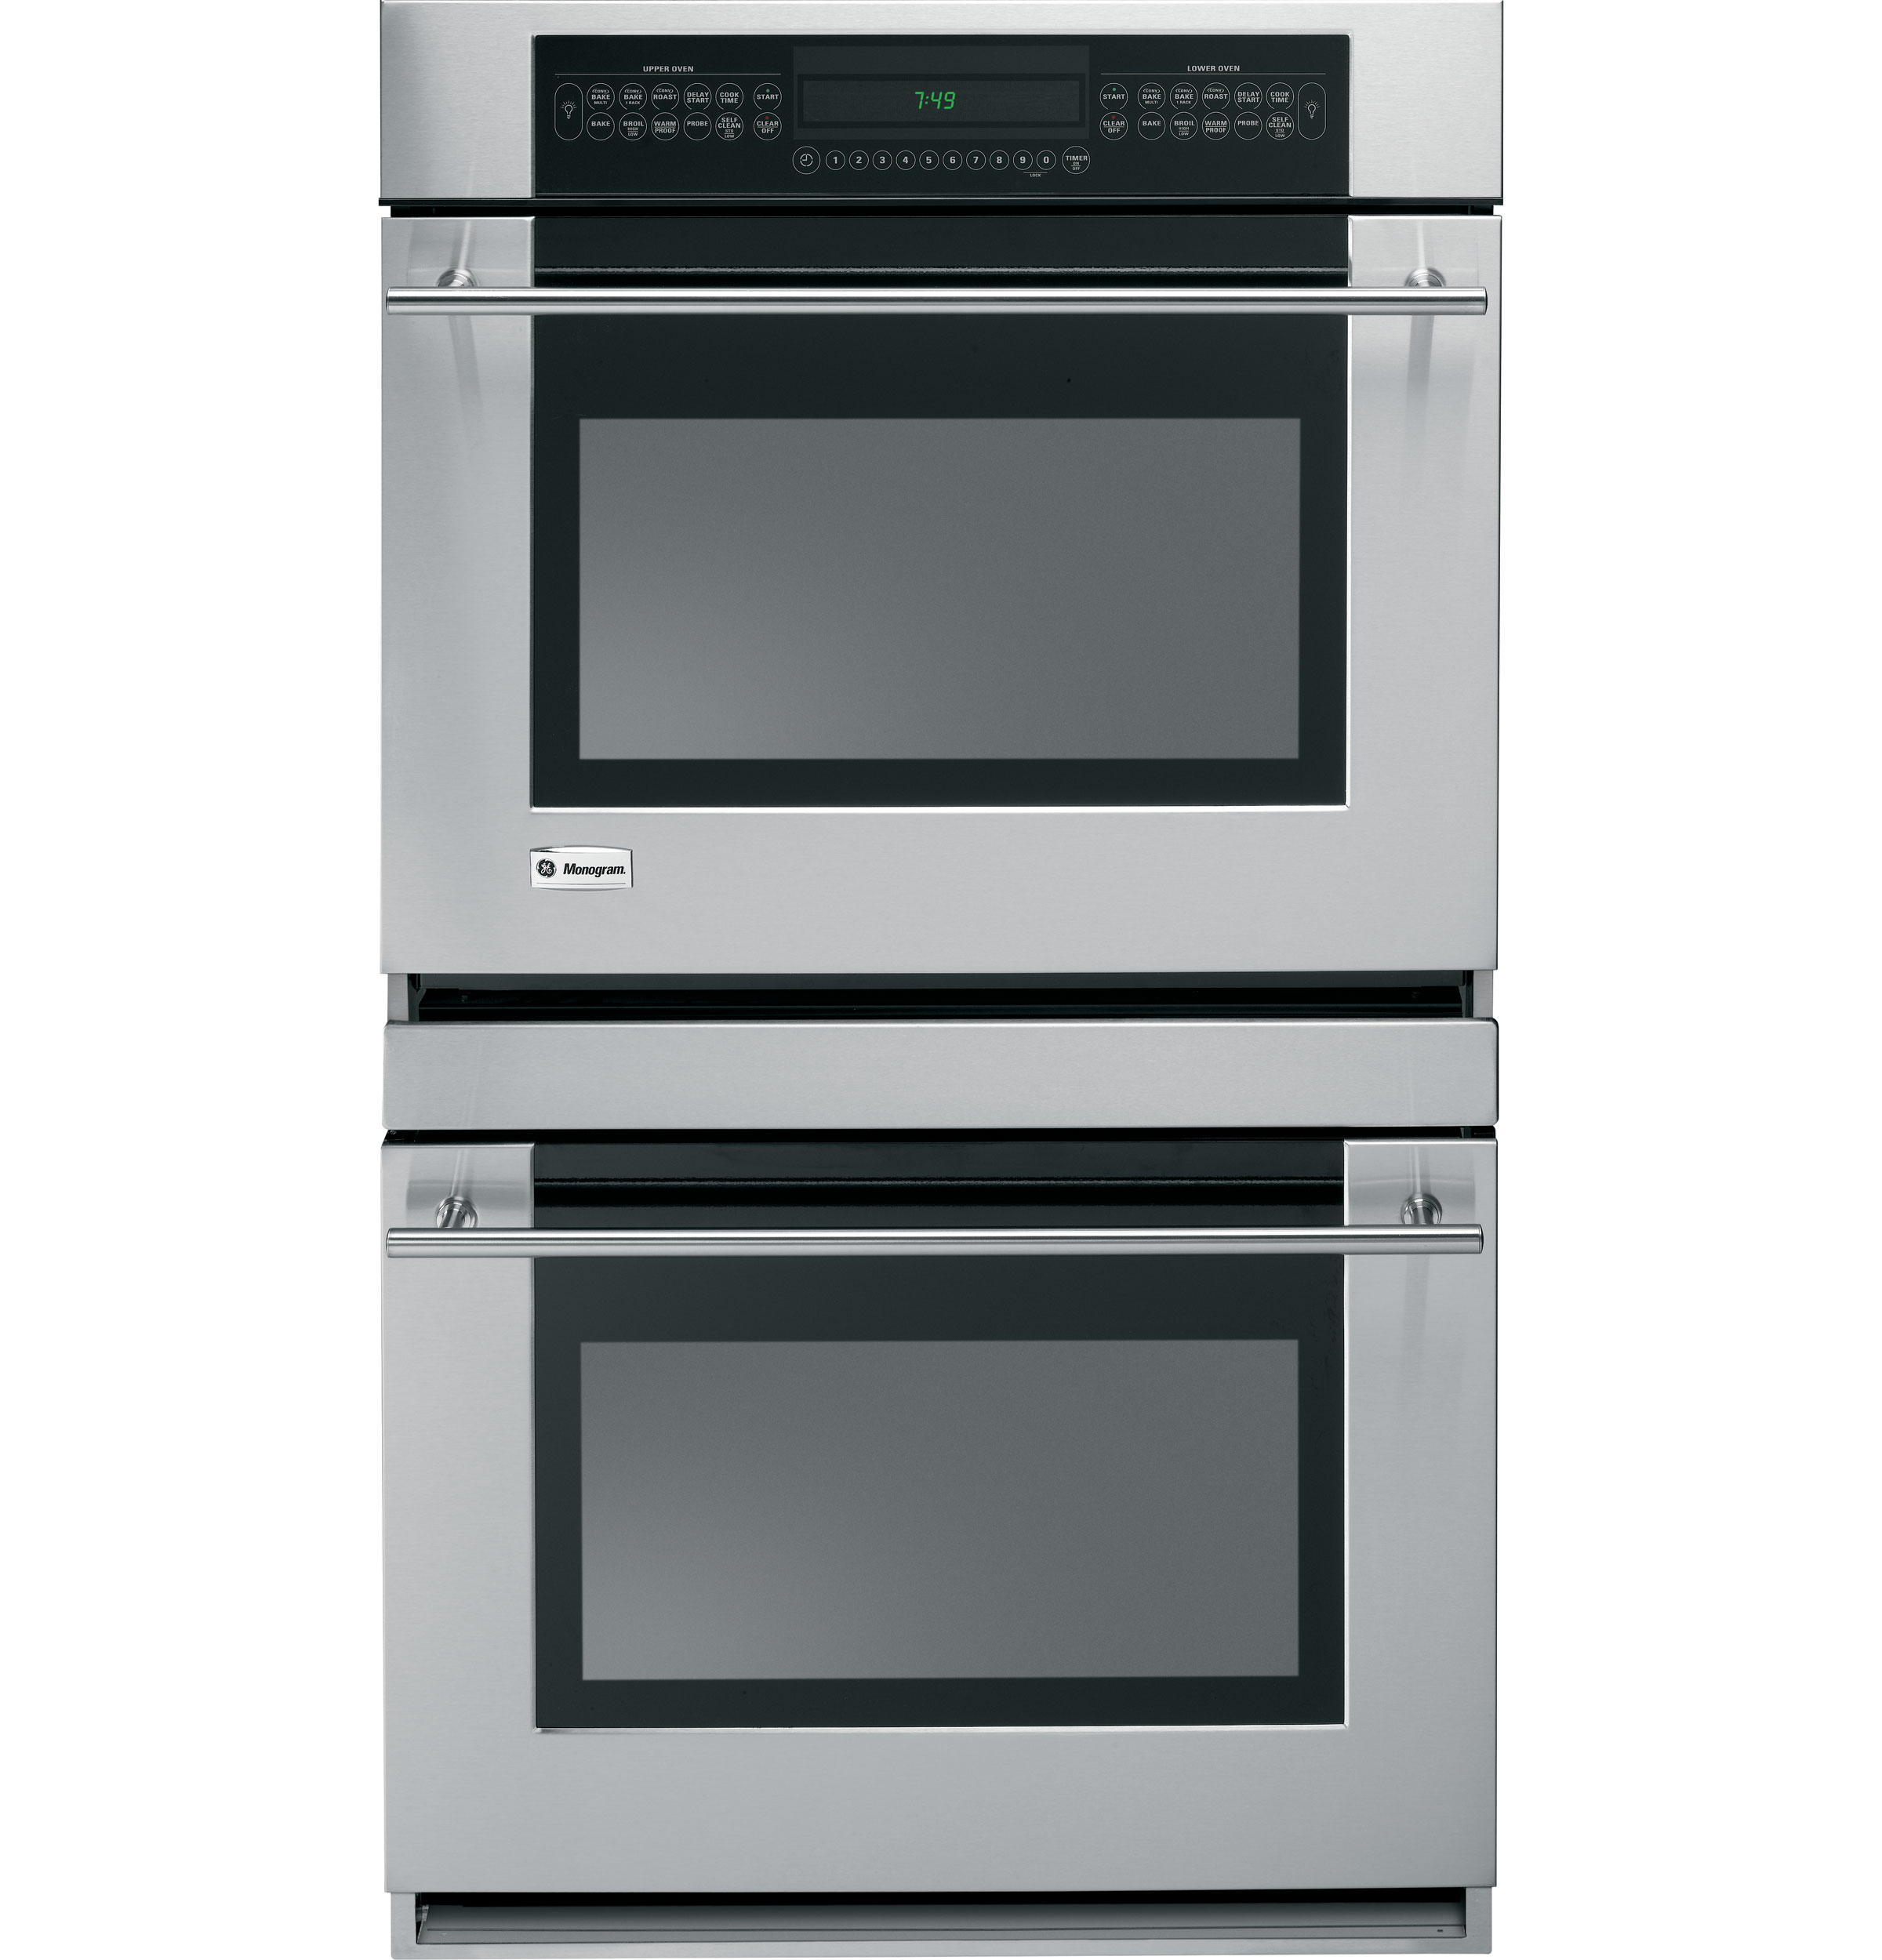 Cooktop Vs Rangetop Whats The Difference as well AK2136BS as well Whirlpool Pt400l furthermore JGD3430BS in addition Watch. on thermador range parts